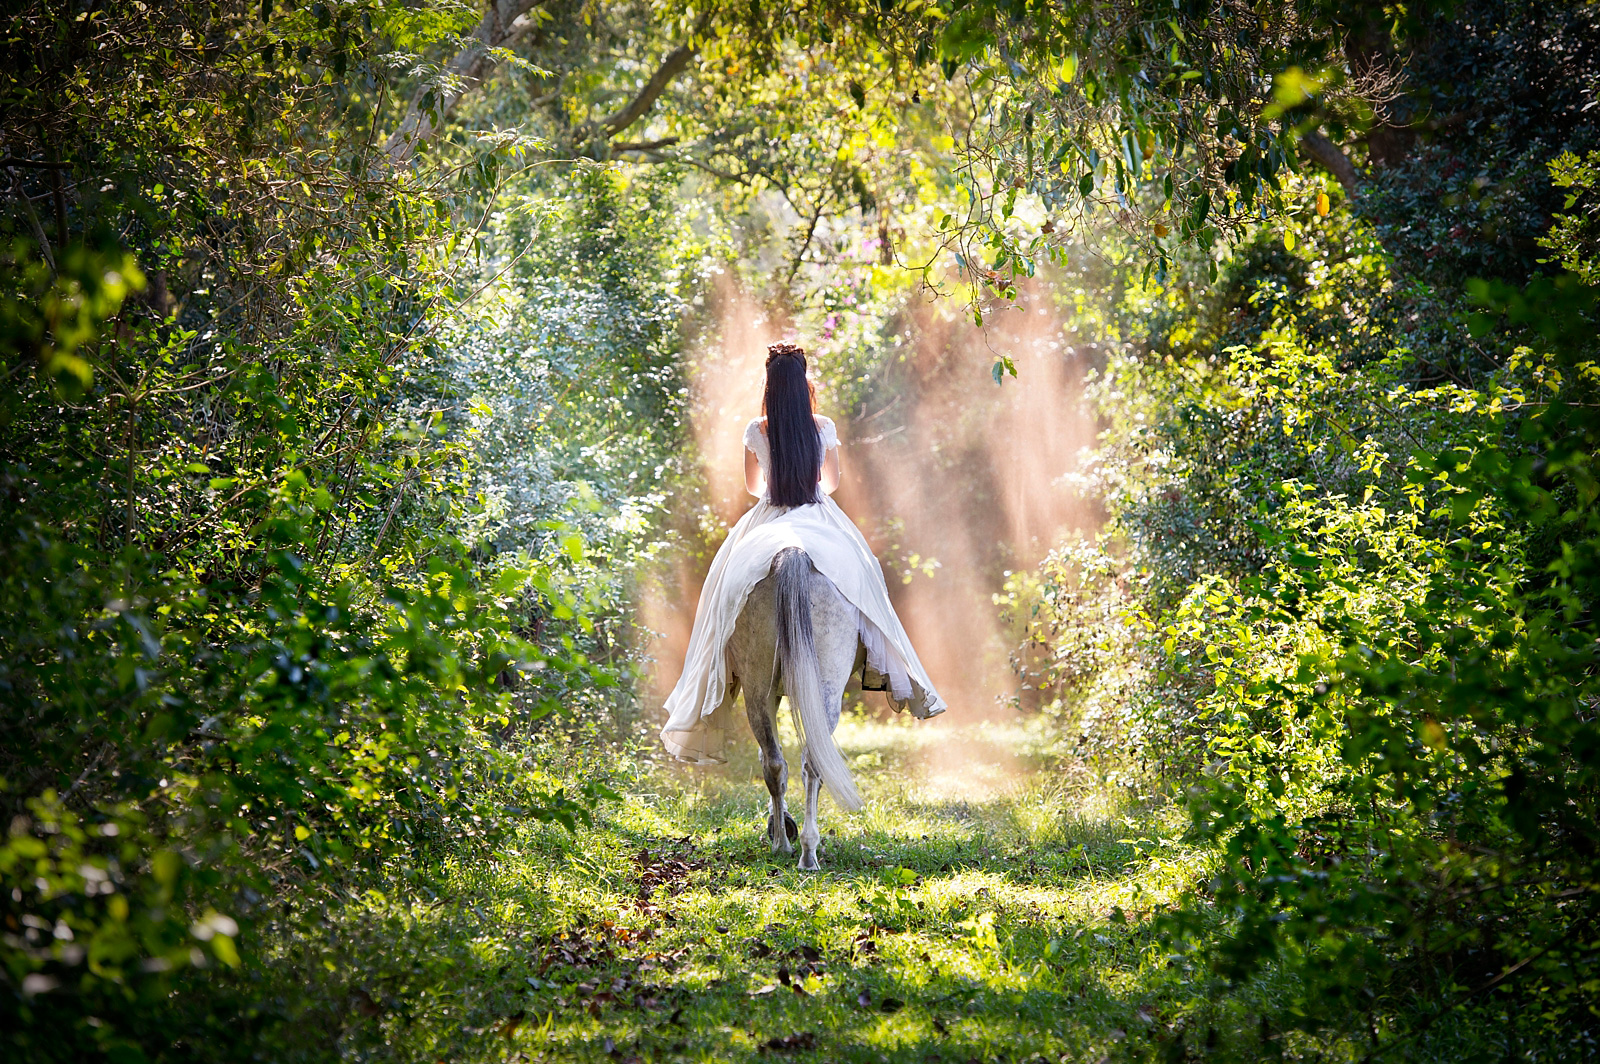 Girl riding away on a horse